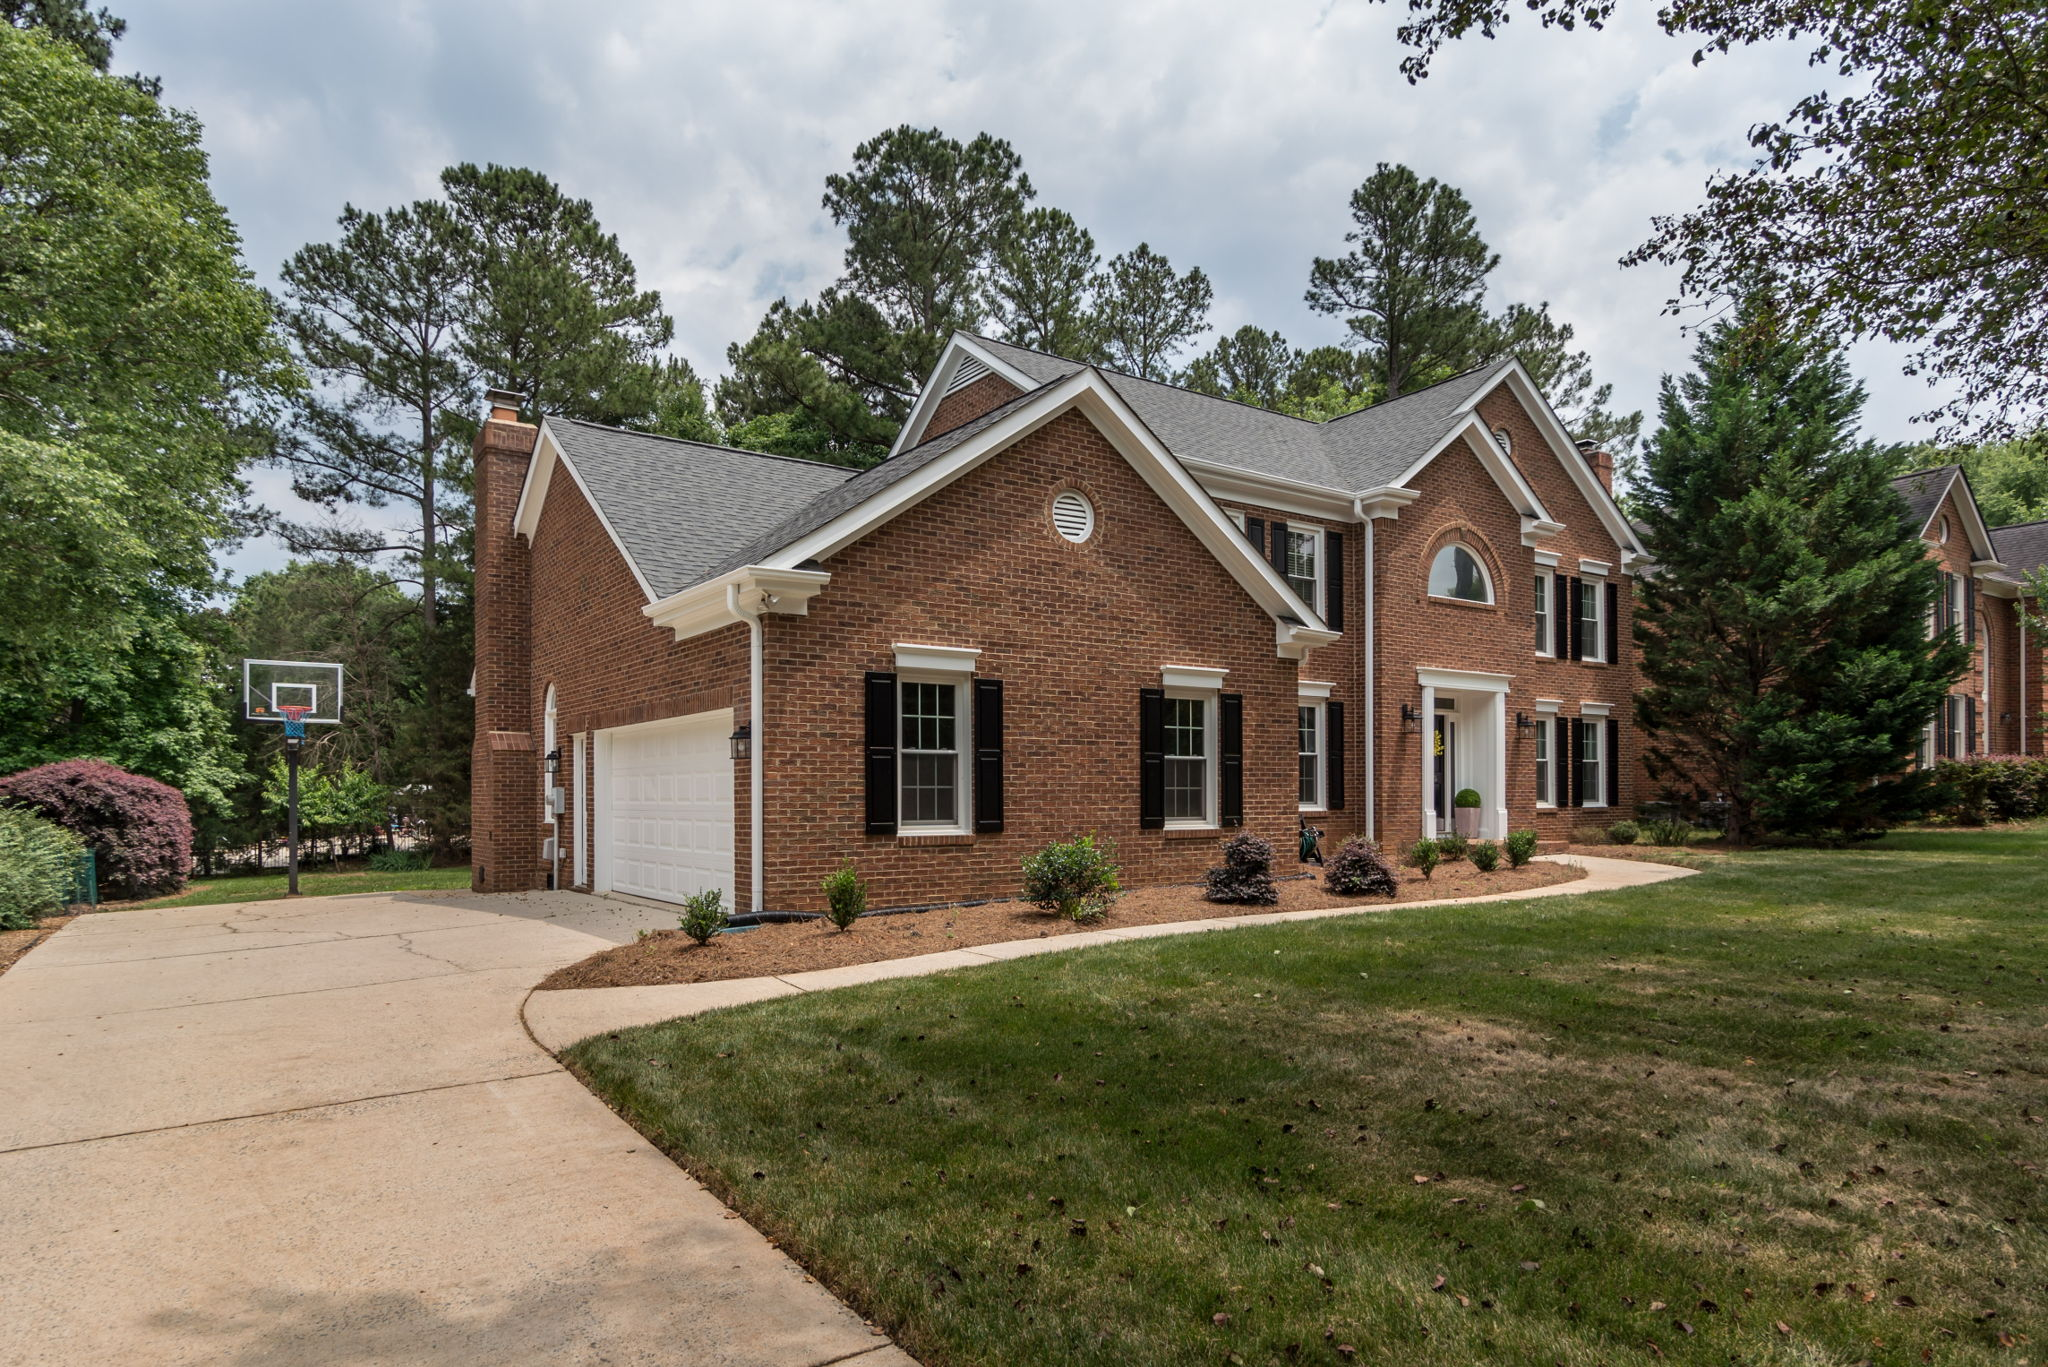 10105 Berkeley Forest Ln - Aryeo Tours